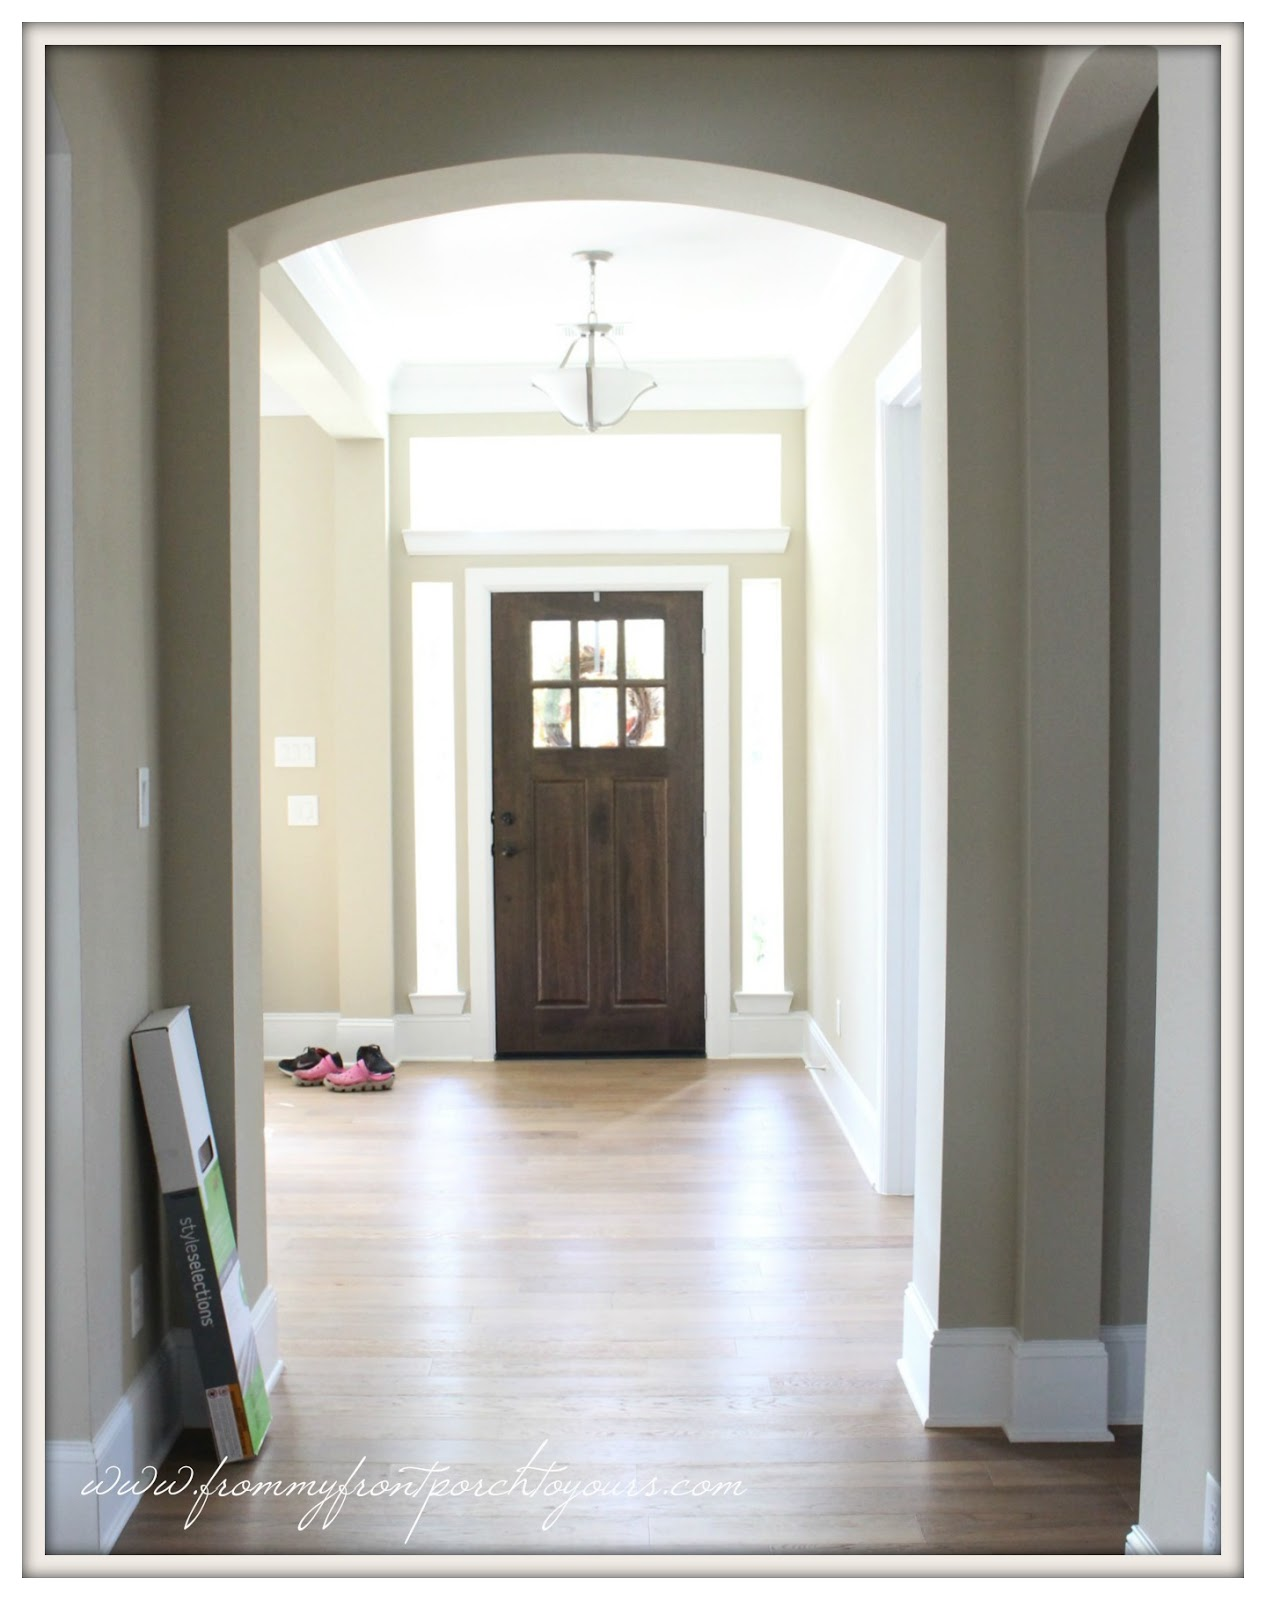 Farmhouse Foyer Tile : From my front porch to yours farmhouse foyer big plans